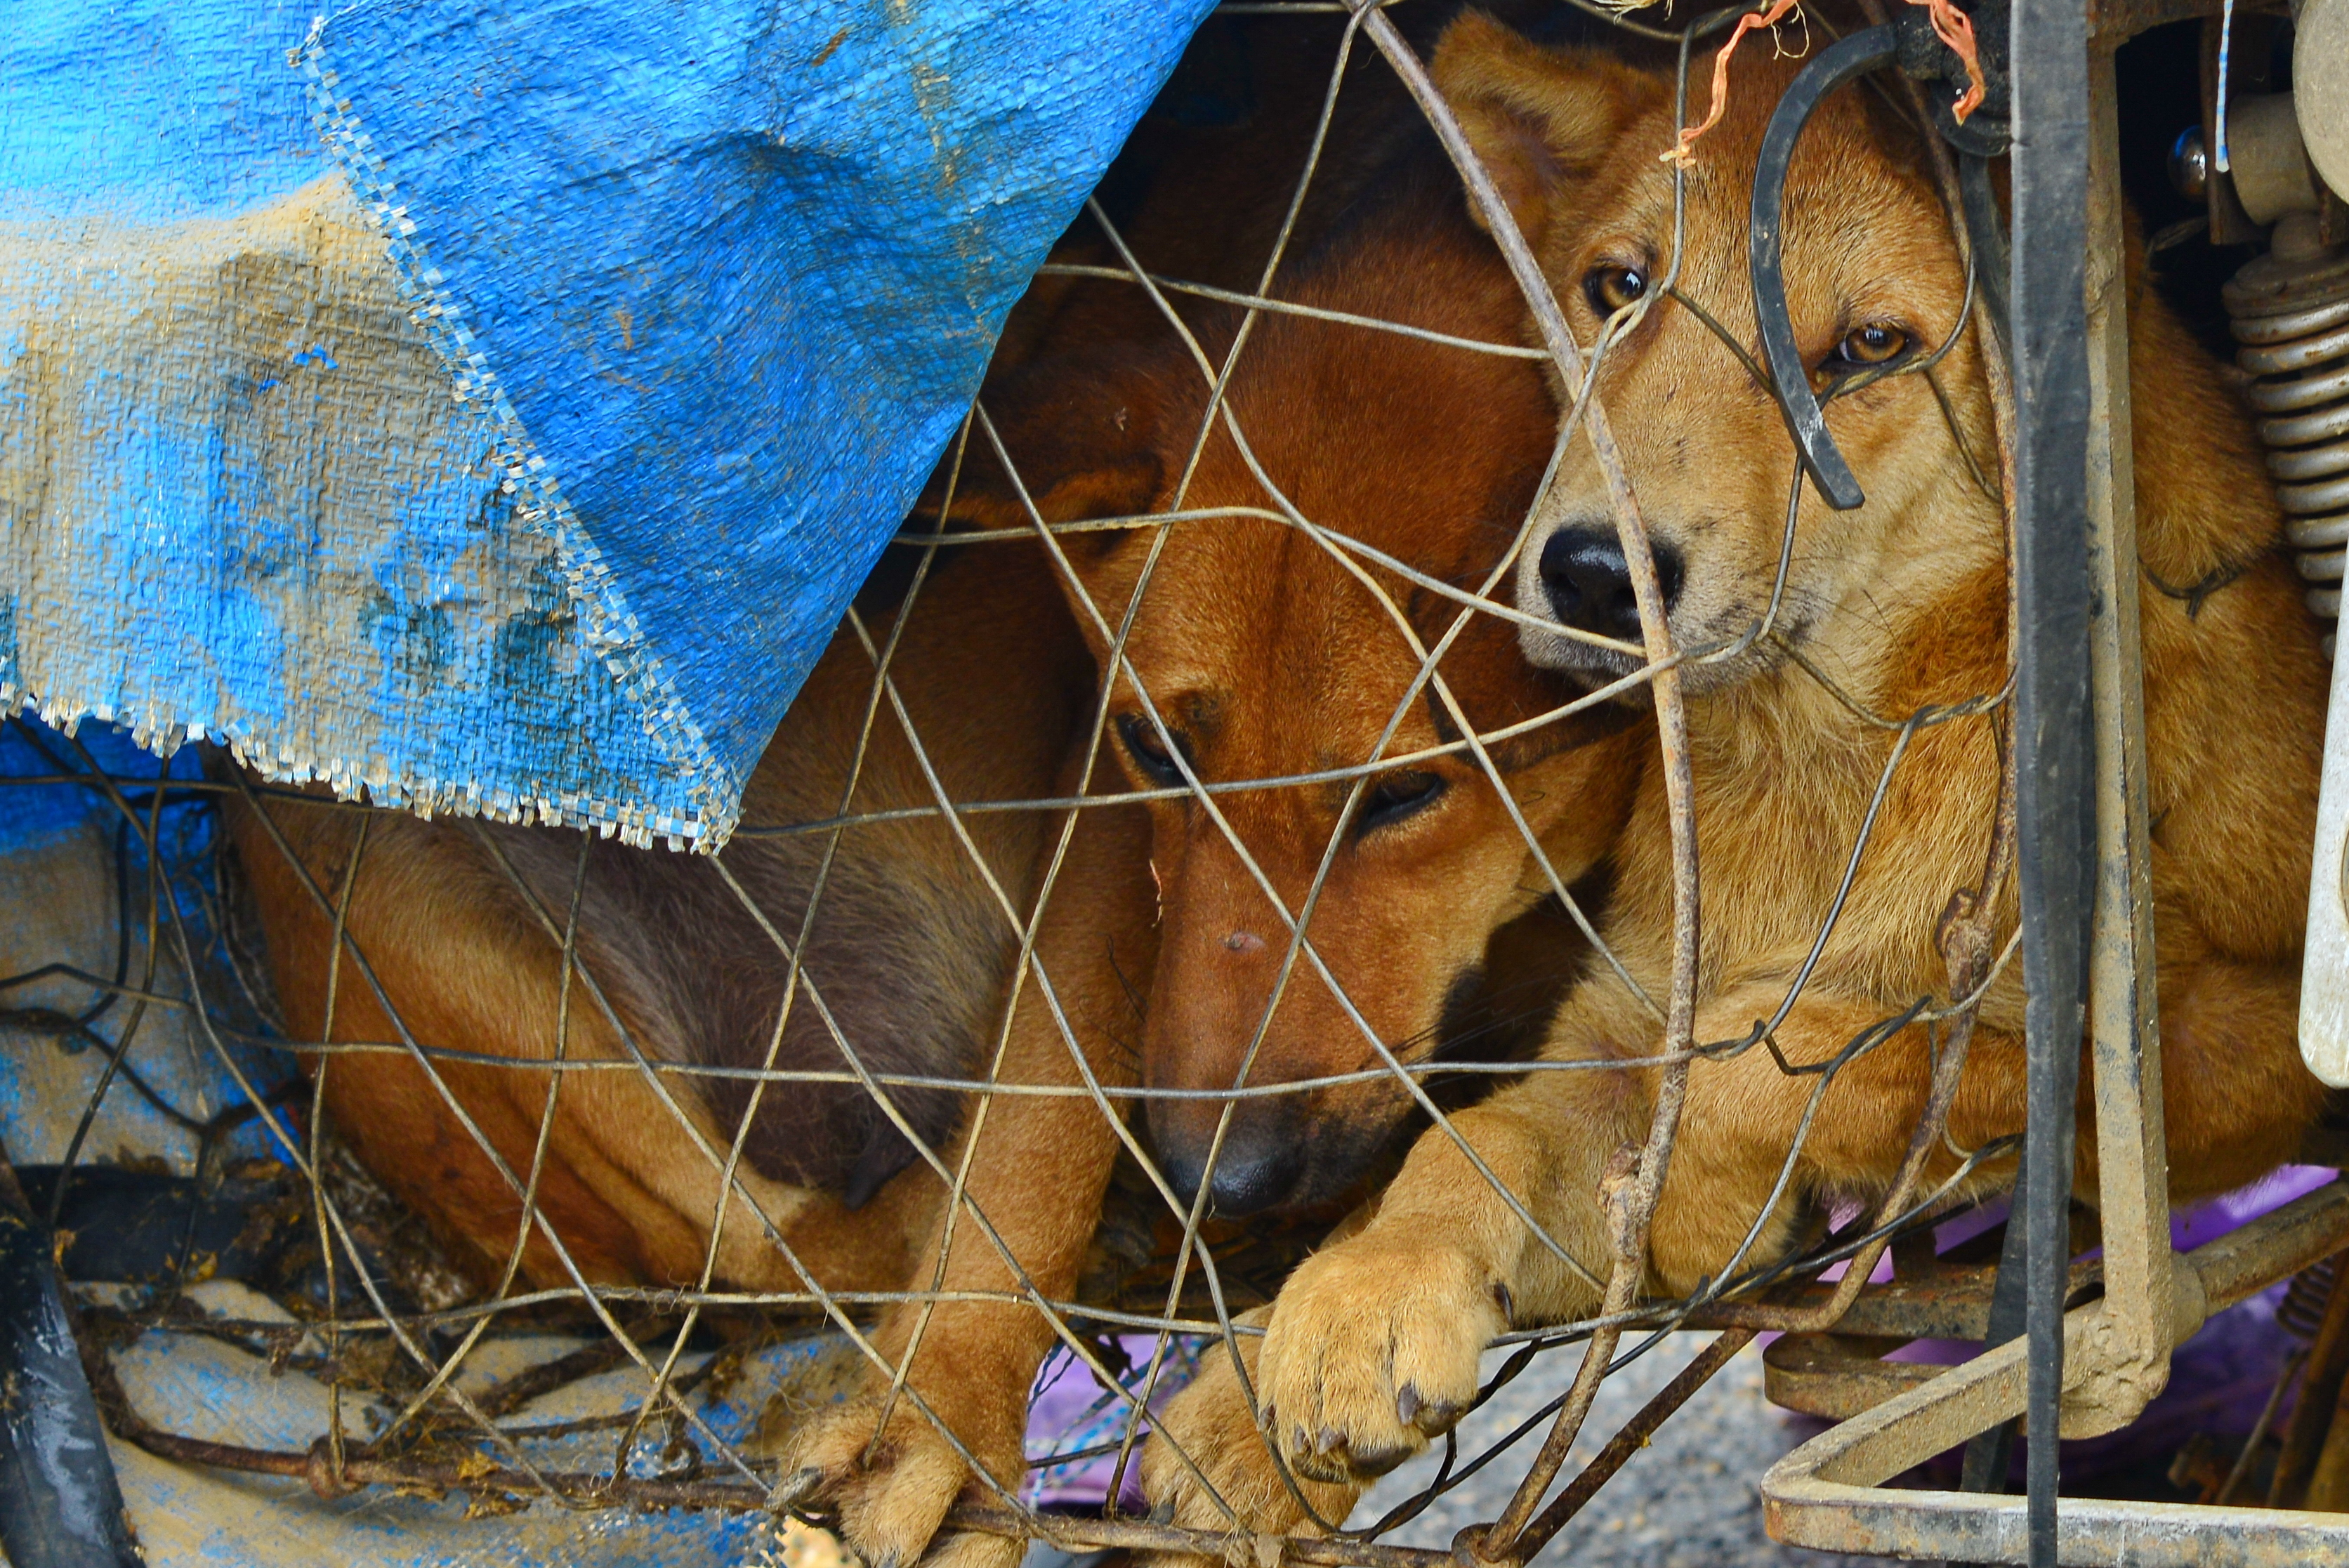 Dogs in cage for dog meat trade